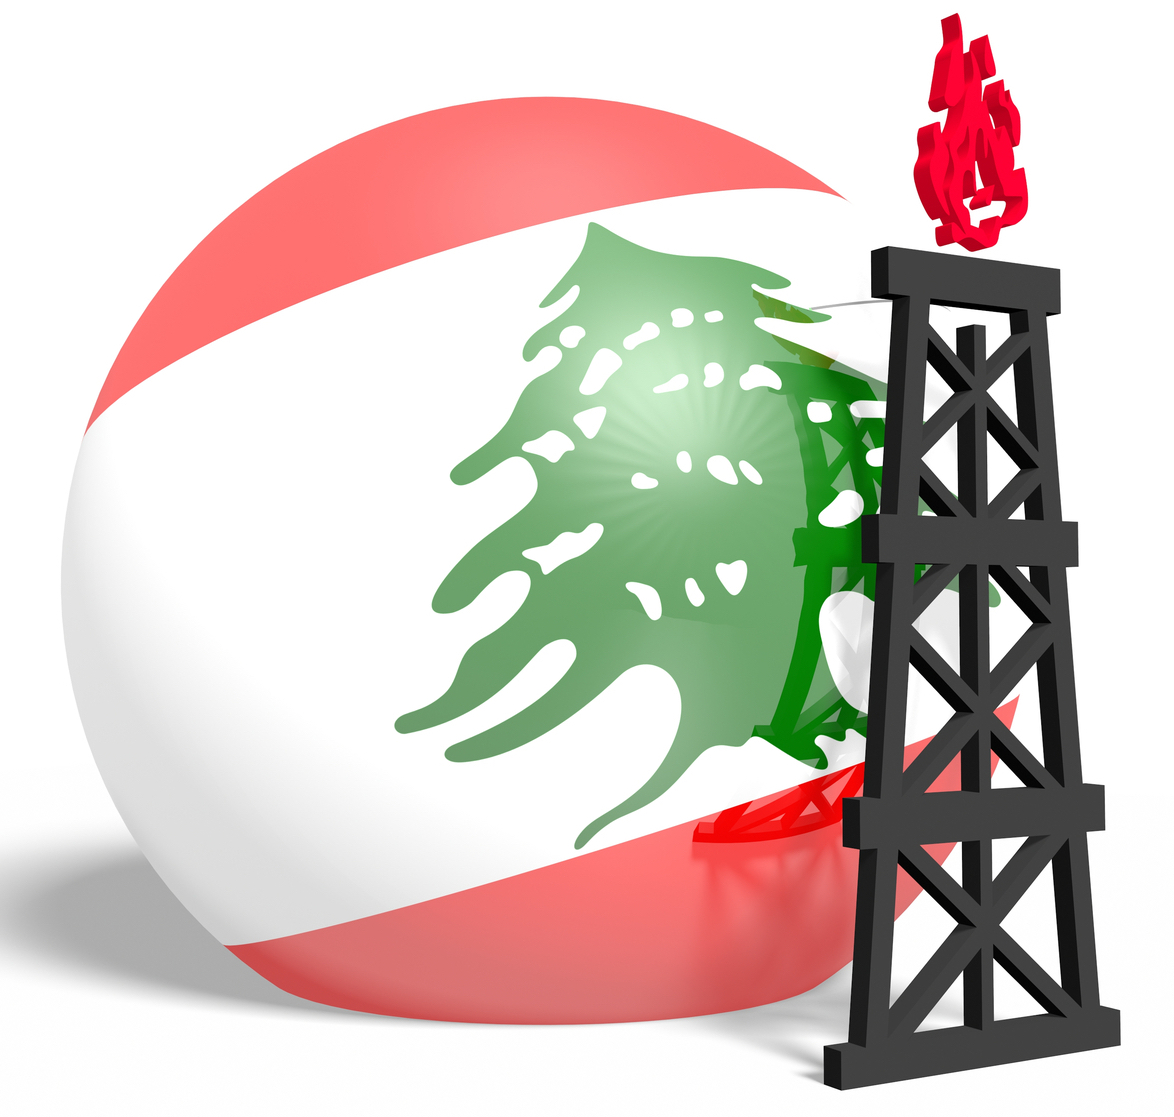 Reflected sphere with gas rig simple icon, textured by Lebanon flag. Heavy and mining industry concept. 3D rendering